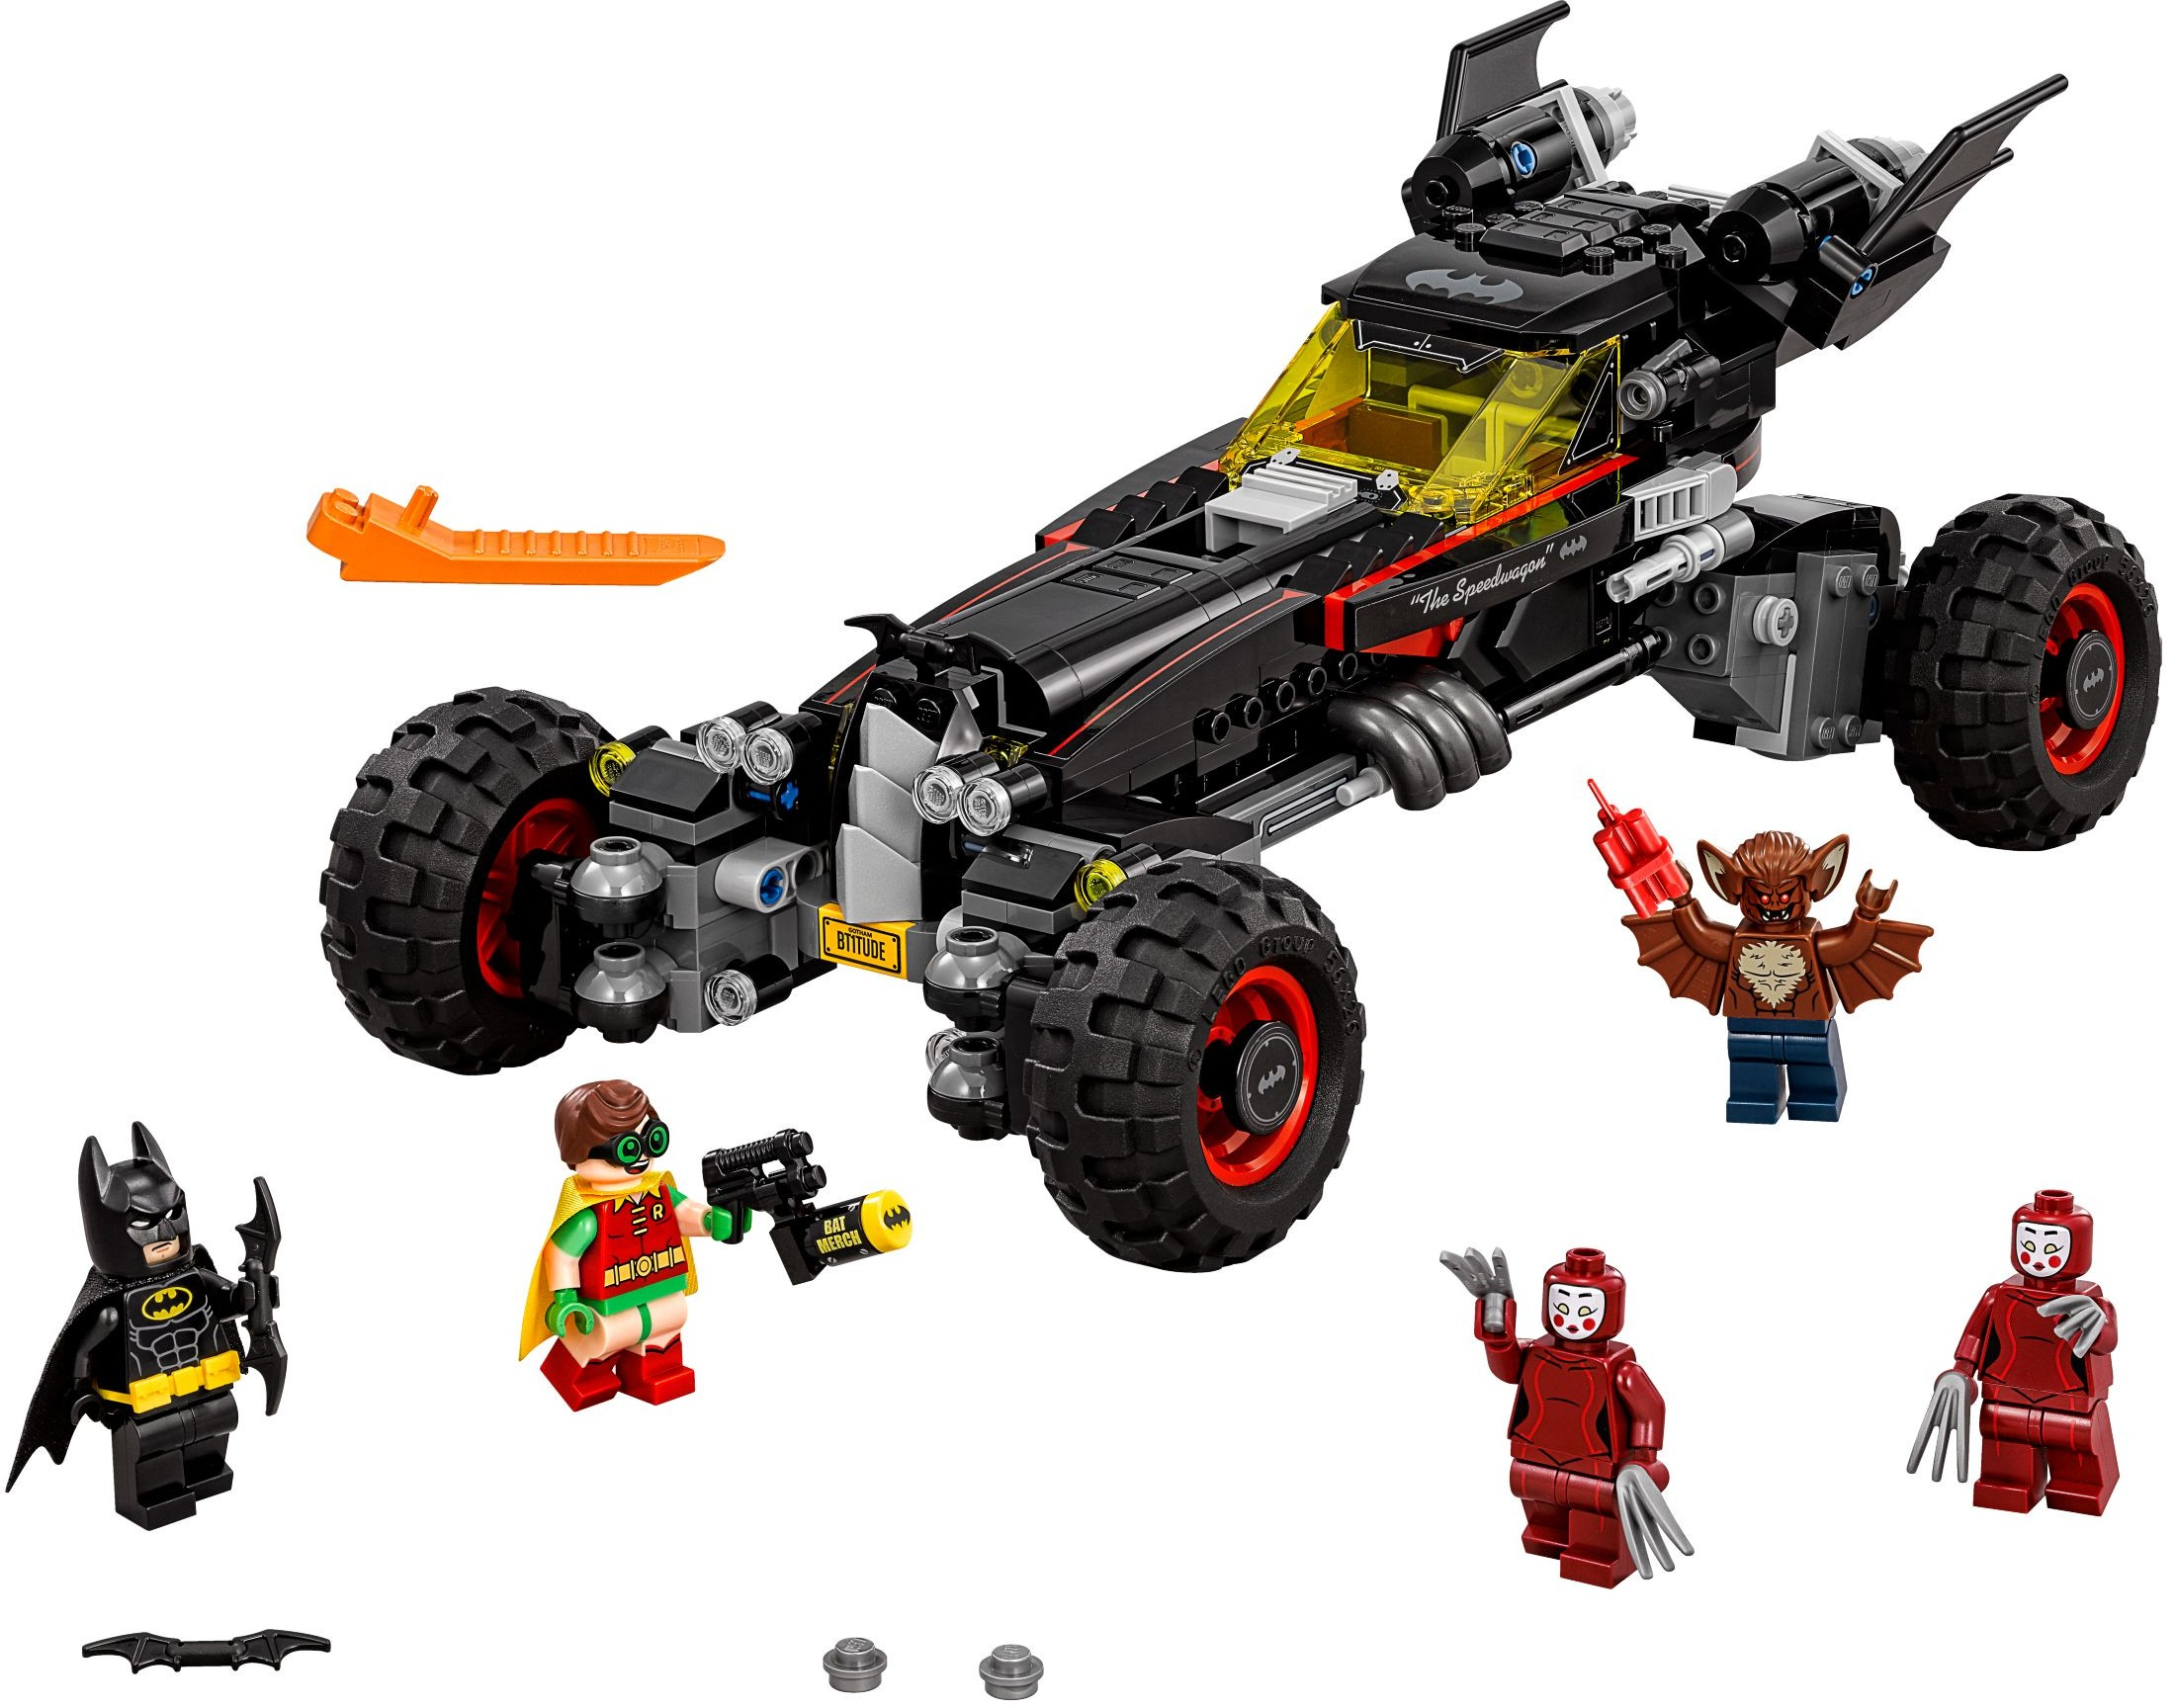 Lego Batman Movie Sets At Great Discounts On Amazon 70909 The Batcave Break In 7800